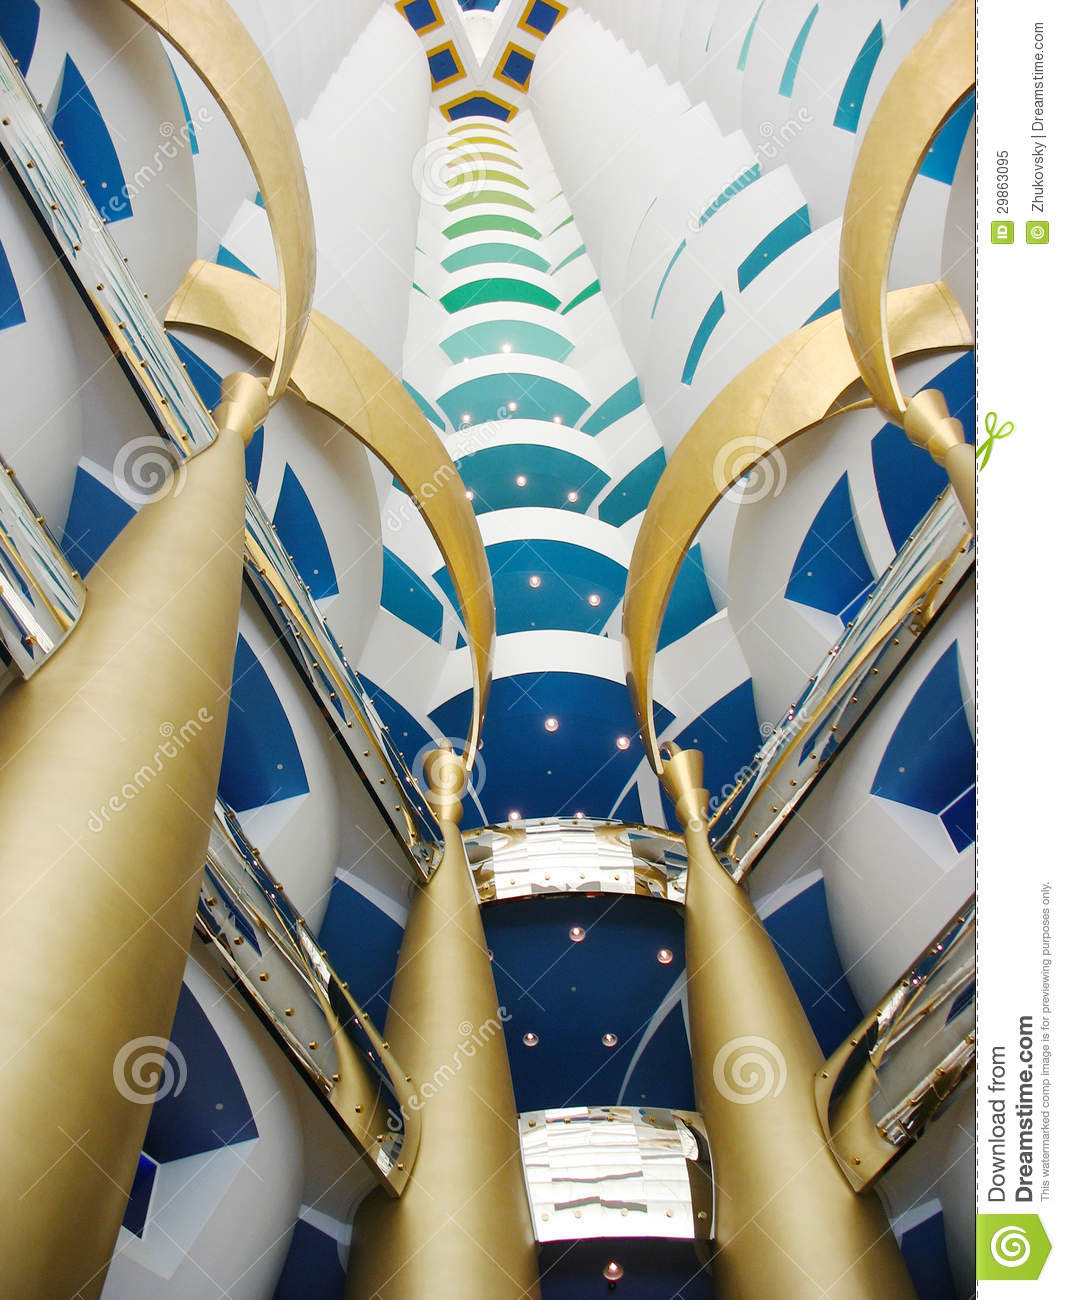 The world 39 s tallest atrium in burj al arab hotel in dubai for Hotel de dubai